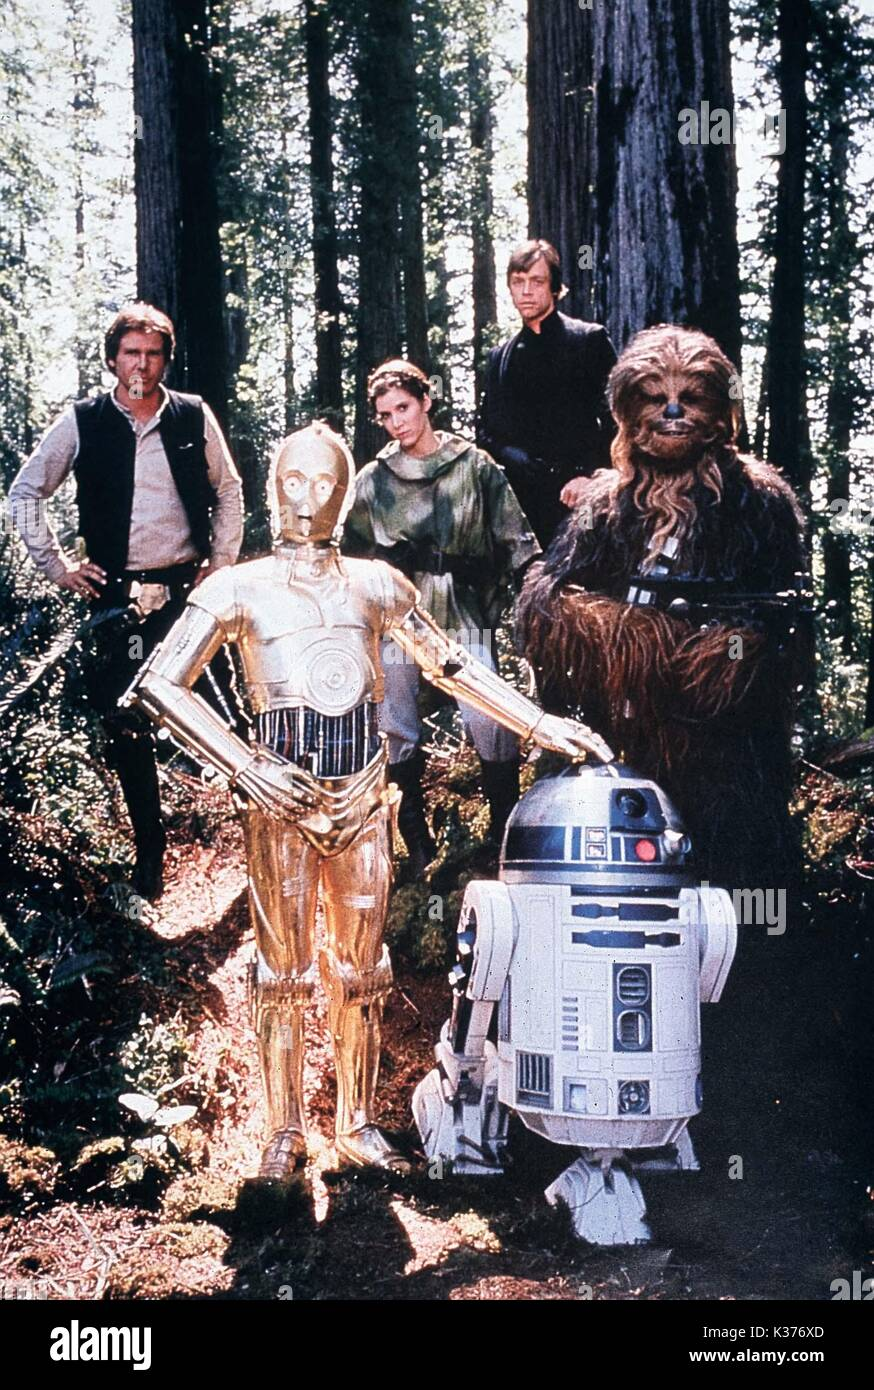 RETURN OF THE JEDI HARRISON FORD, CARRIE FISHER, MARK HAMILL, PETER MAYHEW YOU MUST CREDIT: LUCASFILM LTD     Date: 1983 - Stock Image